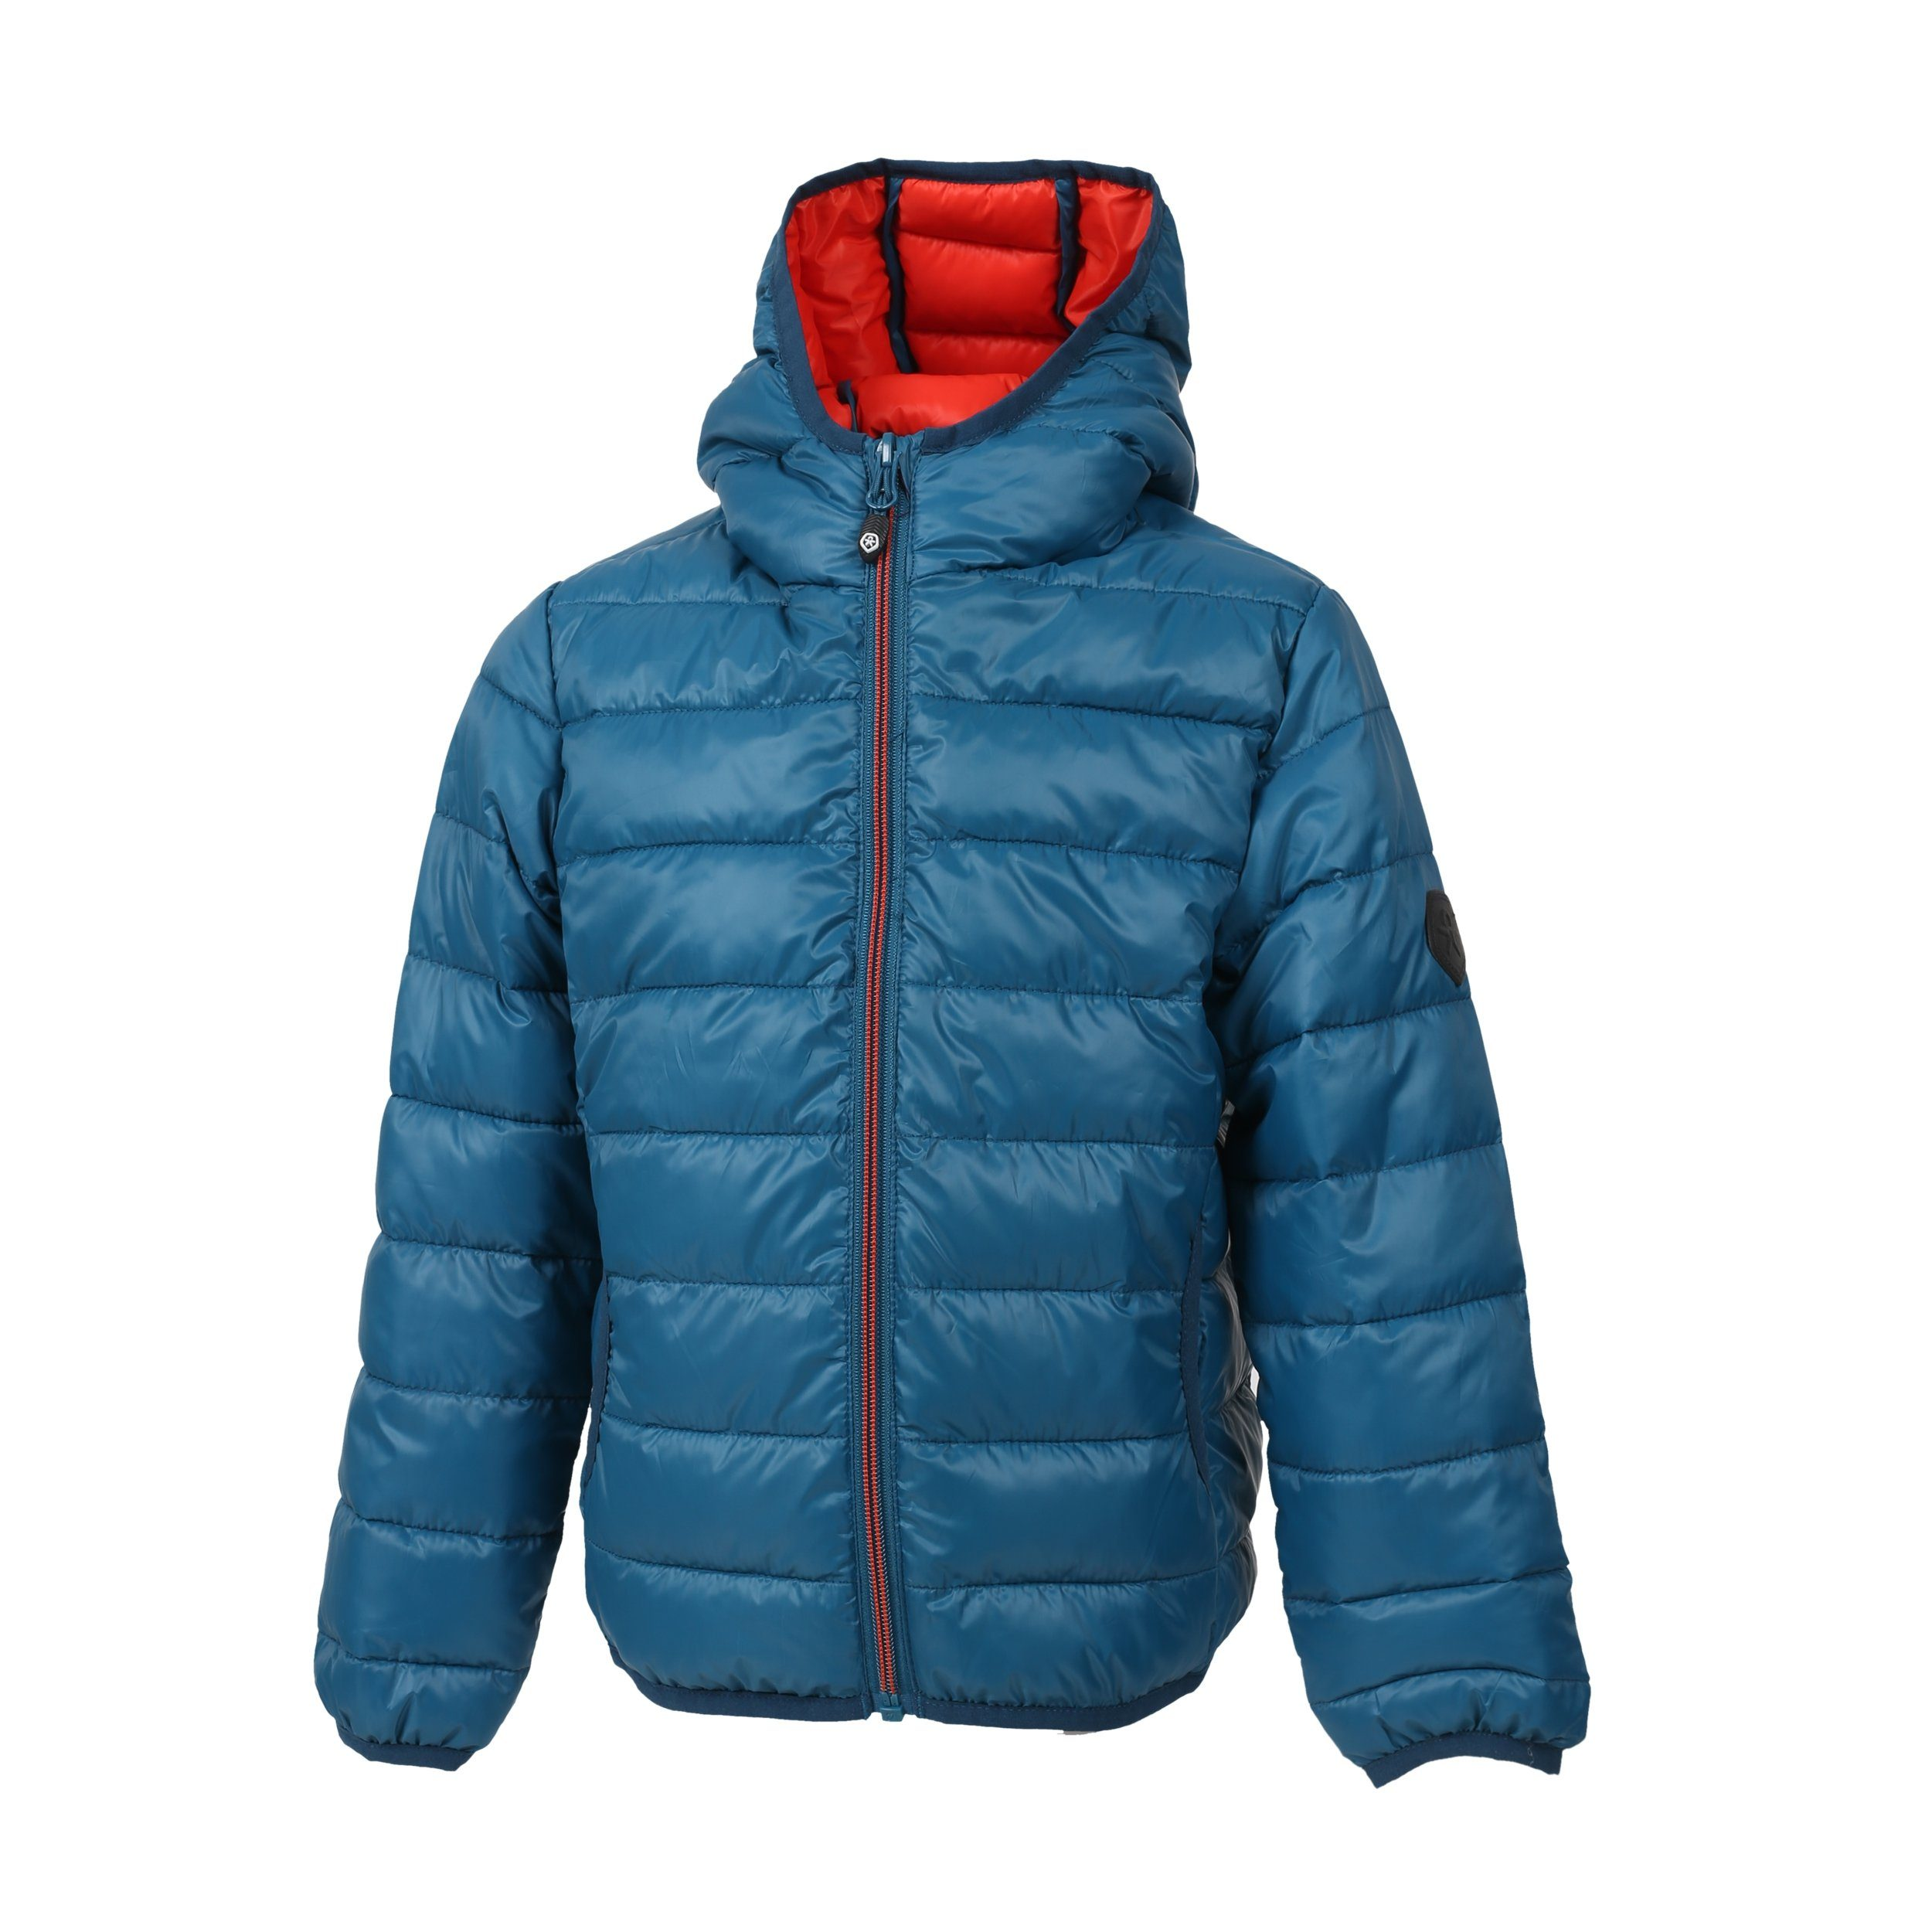 color kids -  Steppjacke mit warmer Kapuze